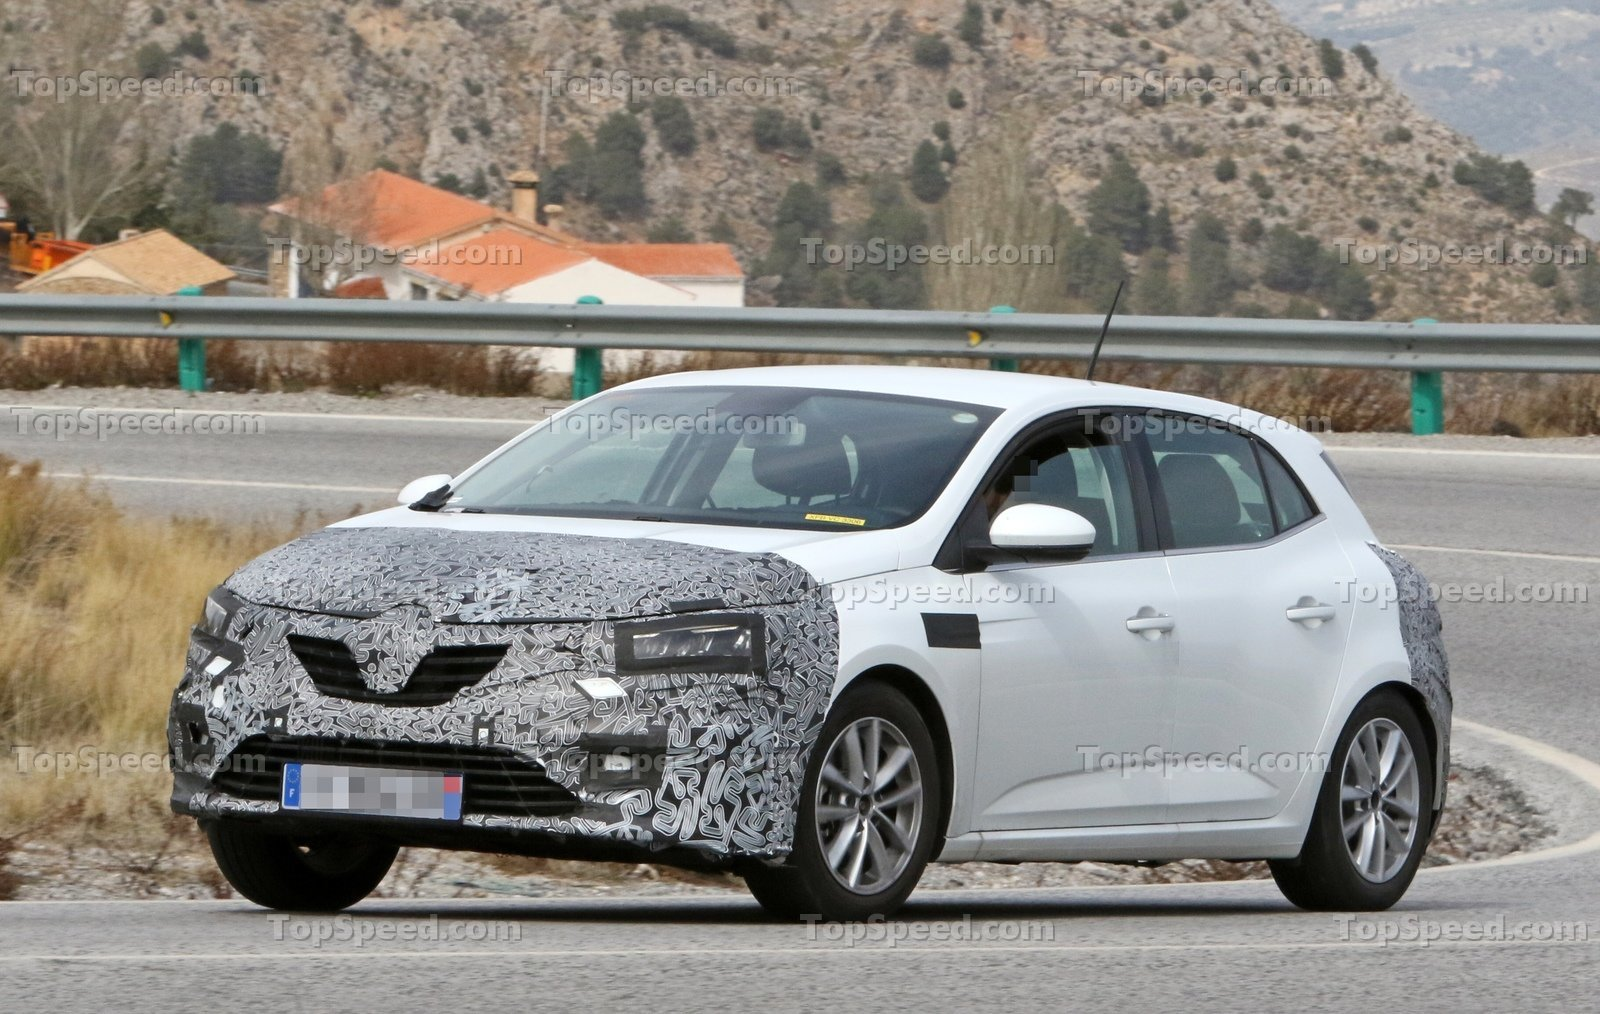 2020 Renault Megane Pictures, Photos, Wallpapers. | Top Speed